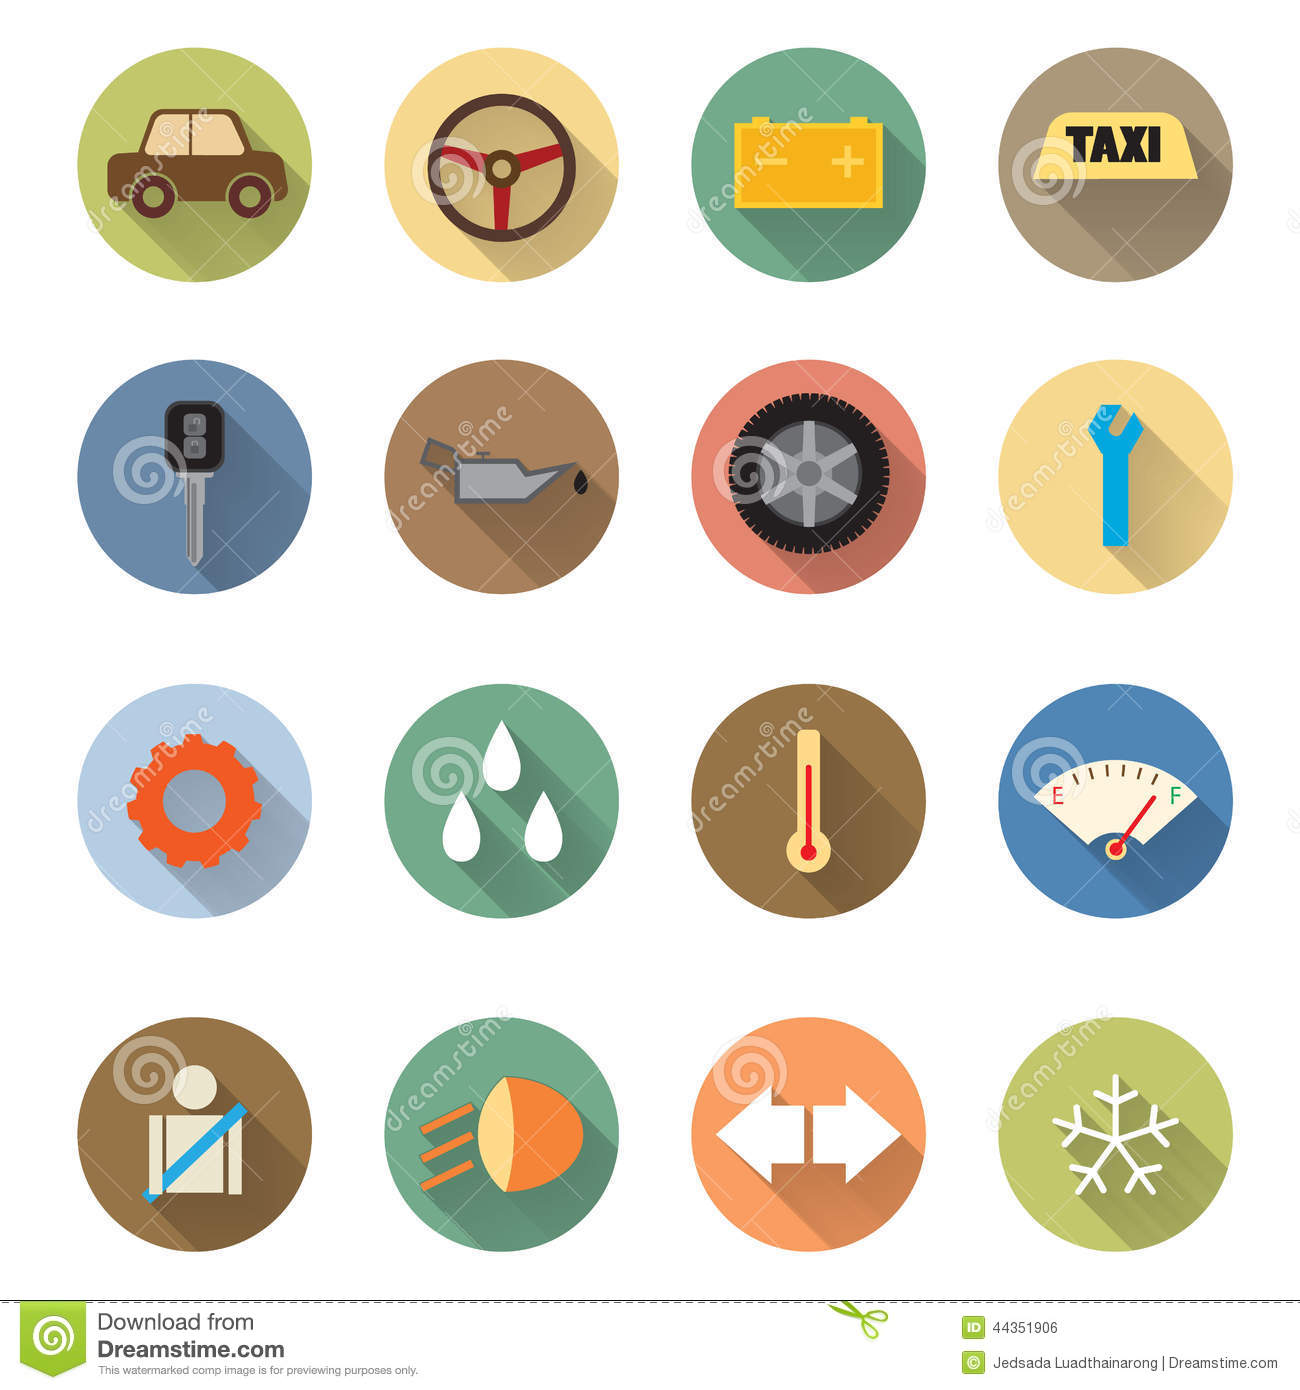 13 Automotive Repair Flat Icon Design Images